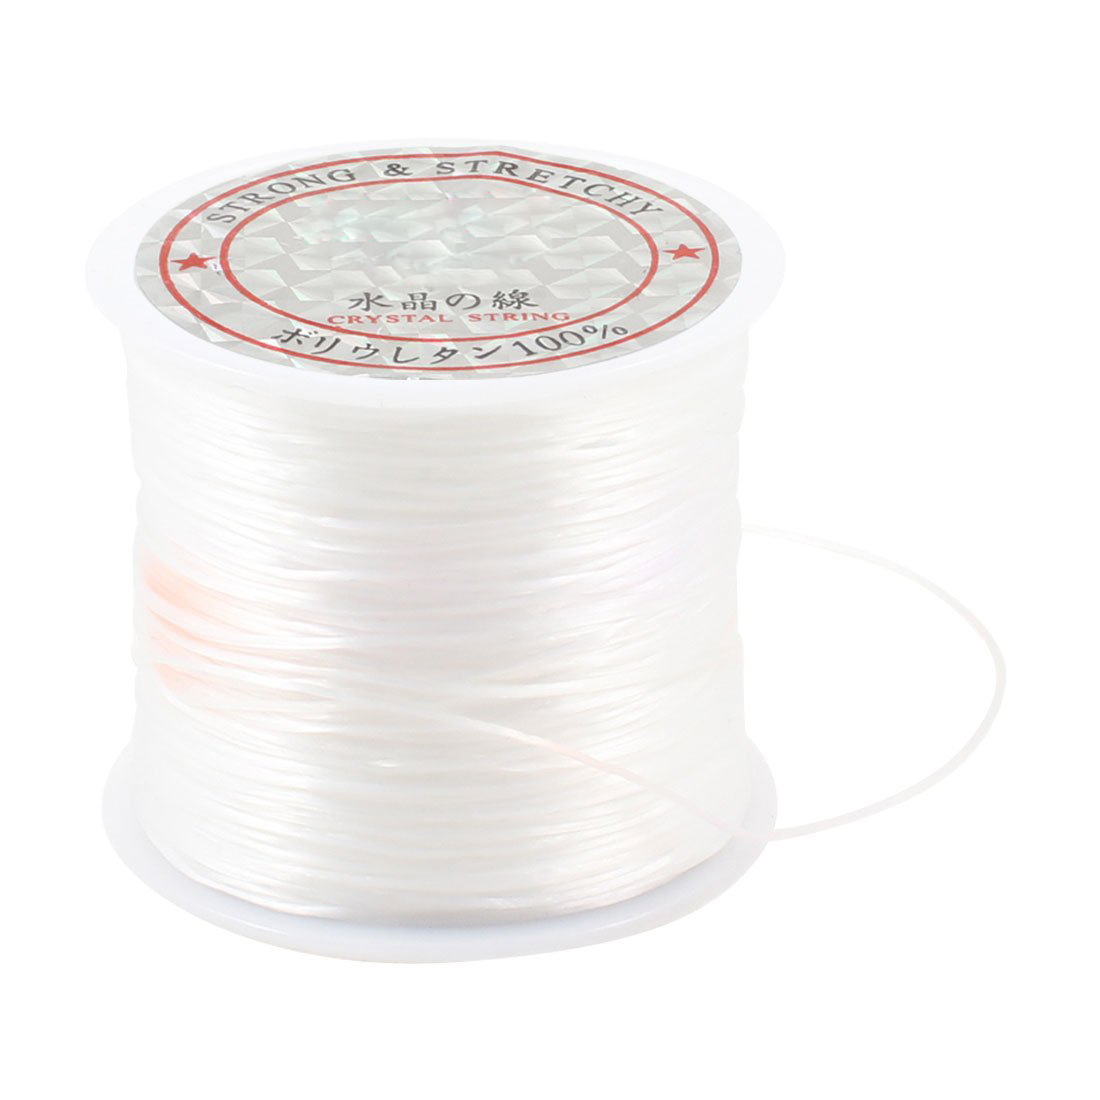 CGDS White Elastic Stretchy Crystal Line Jewelry Beading Thread Spool 100 Meters